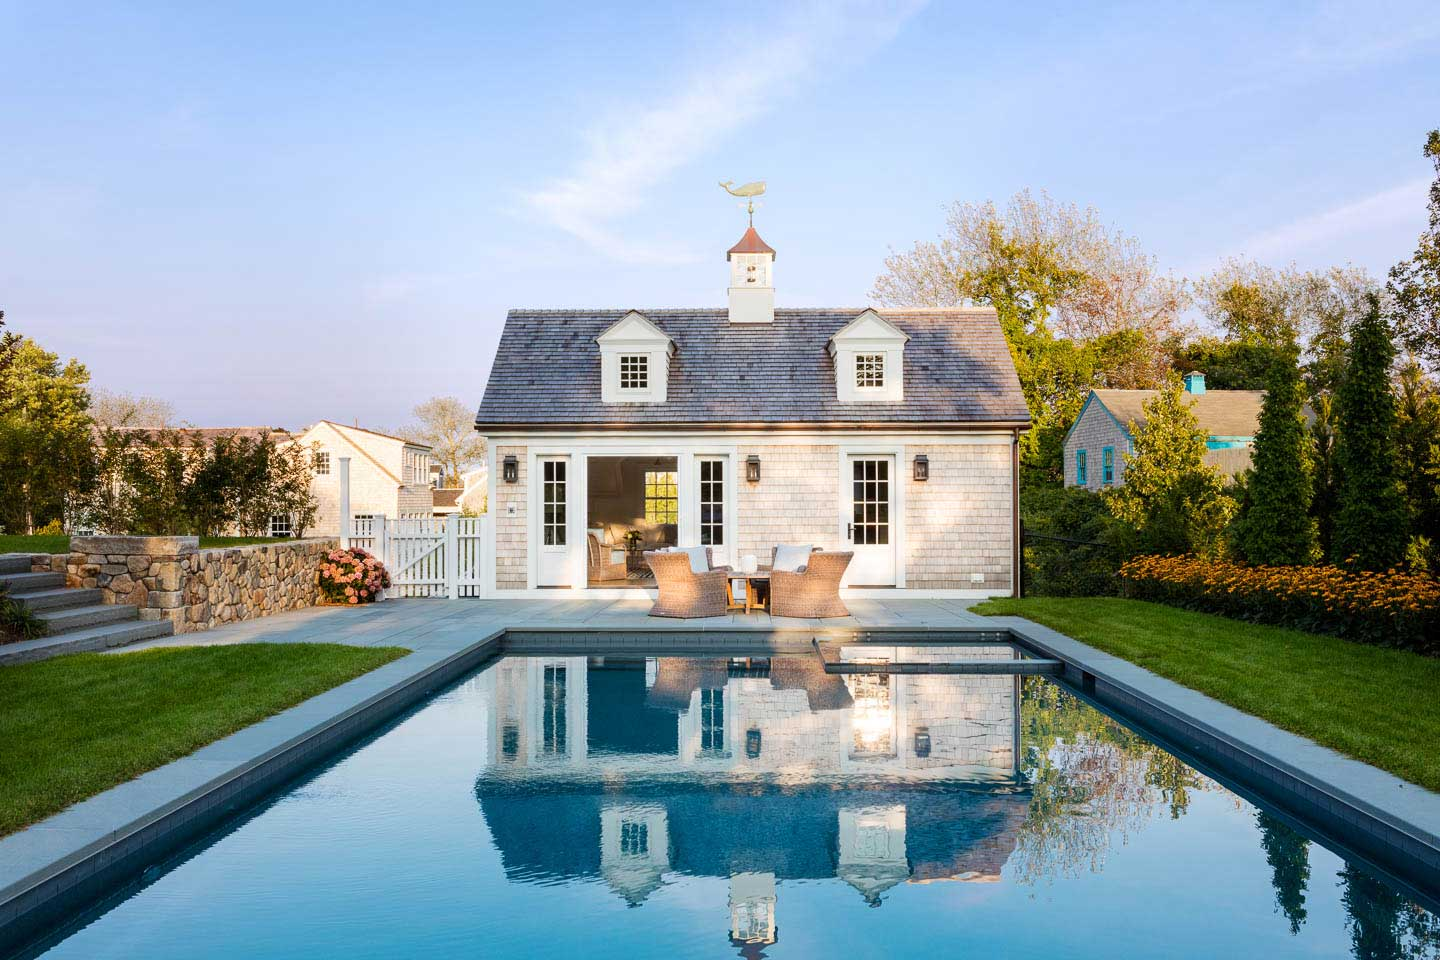 cape house, pool, outdoor seating, pool house, whale, weathervane